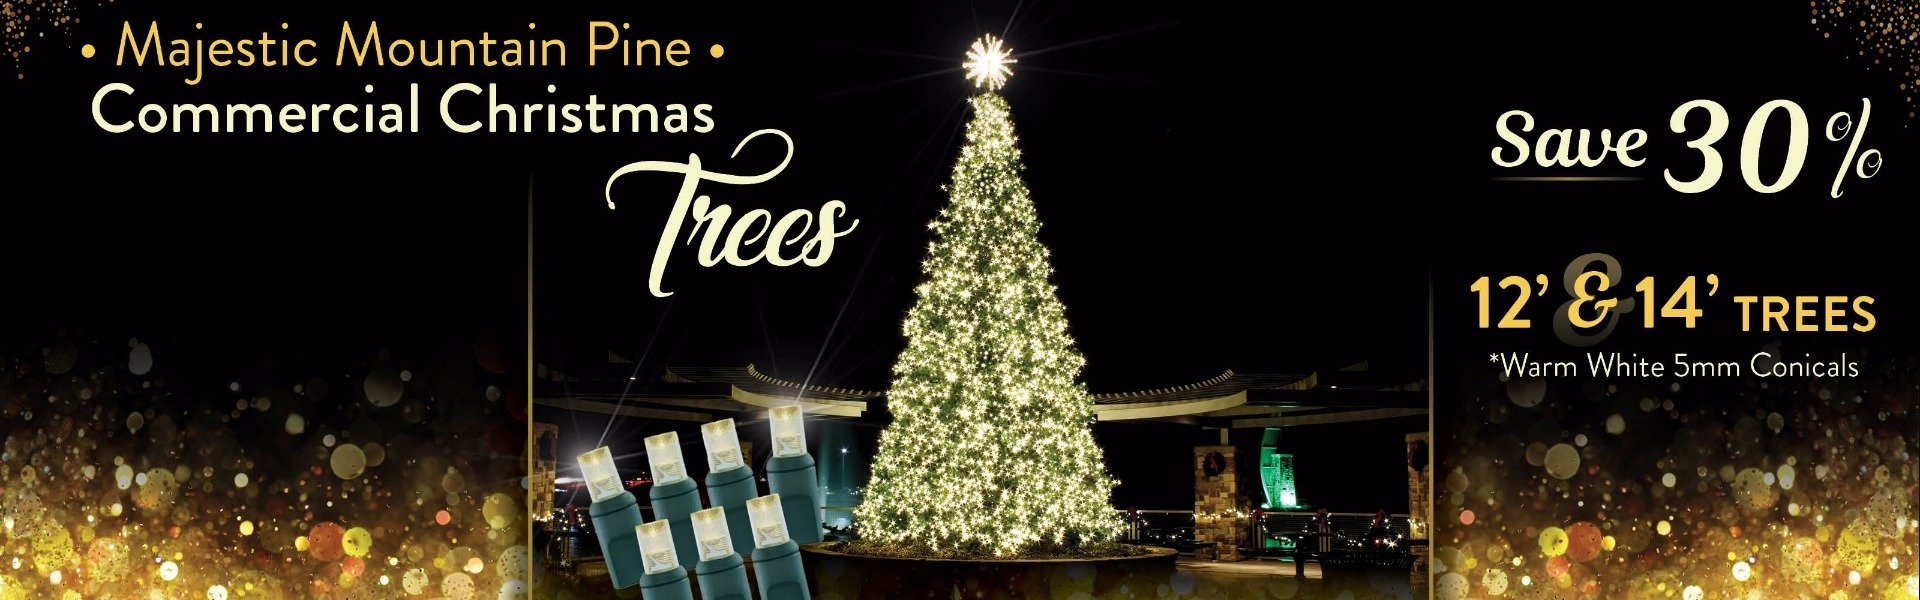 Warm White 5mm Majestic Mountain Pine Commercial Christmas Trees Sizes 12' and 14' on sale. Save 30%